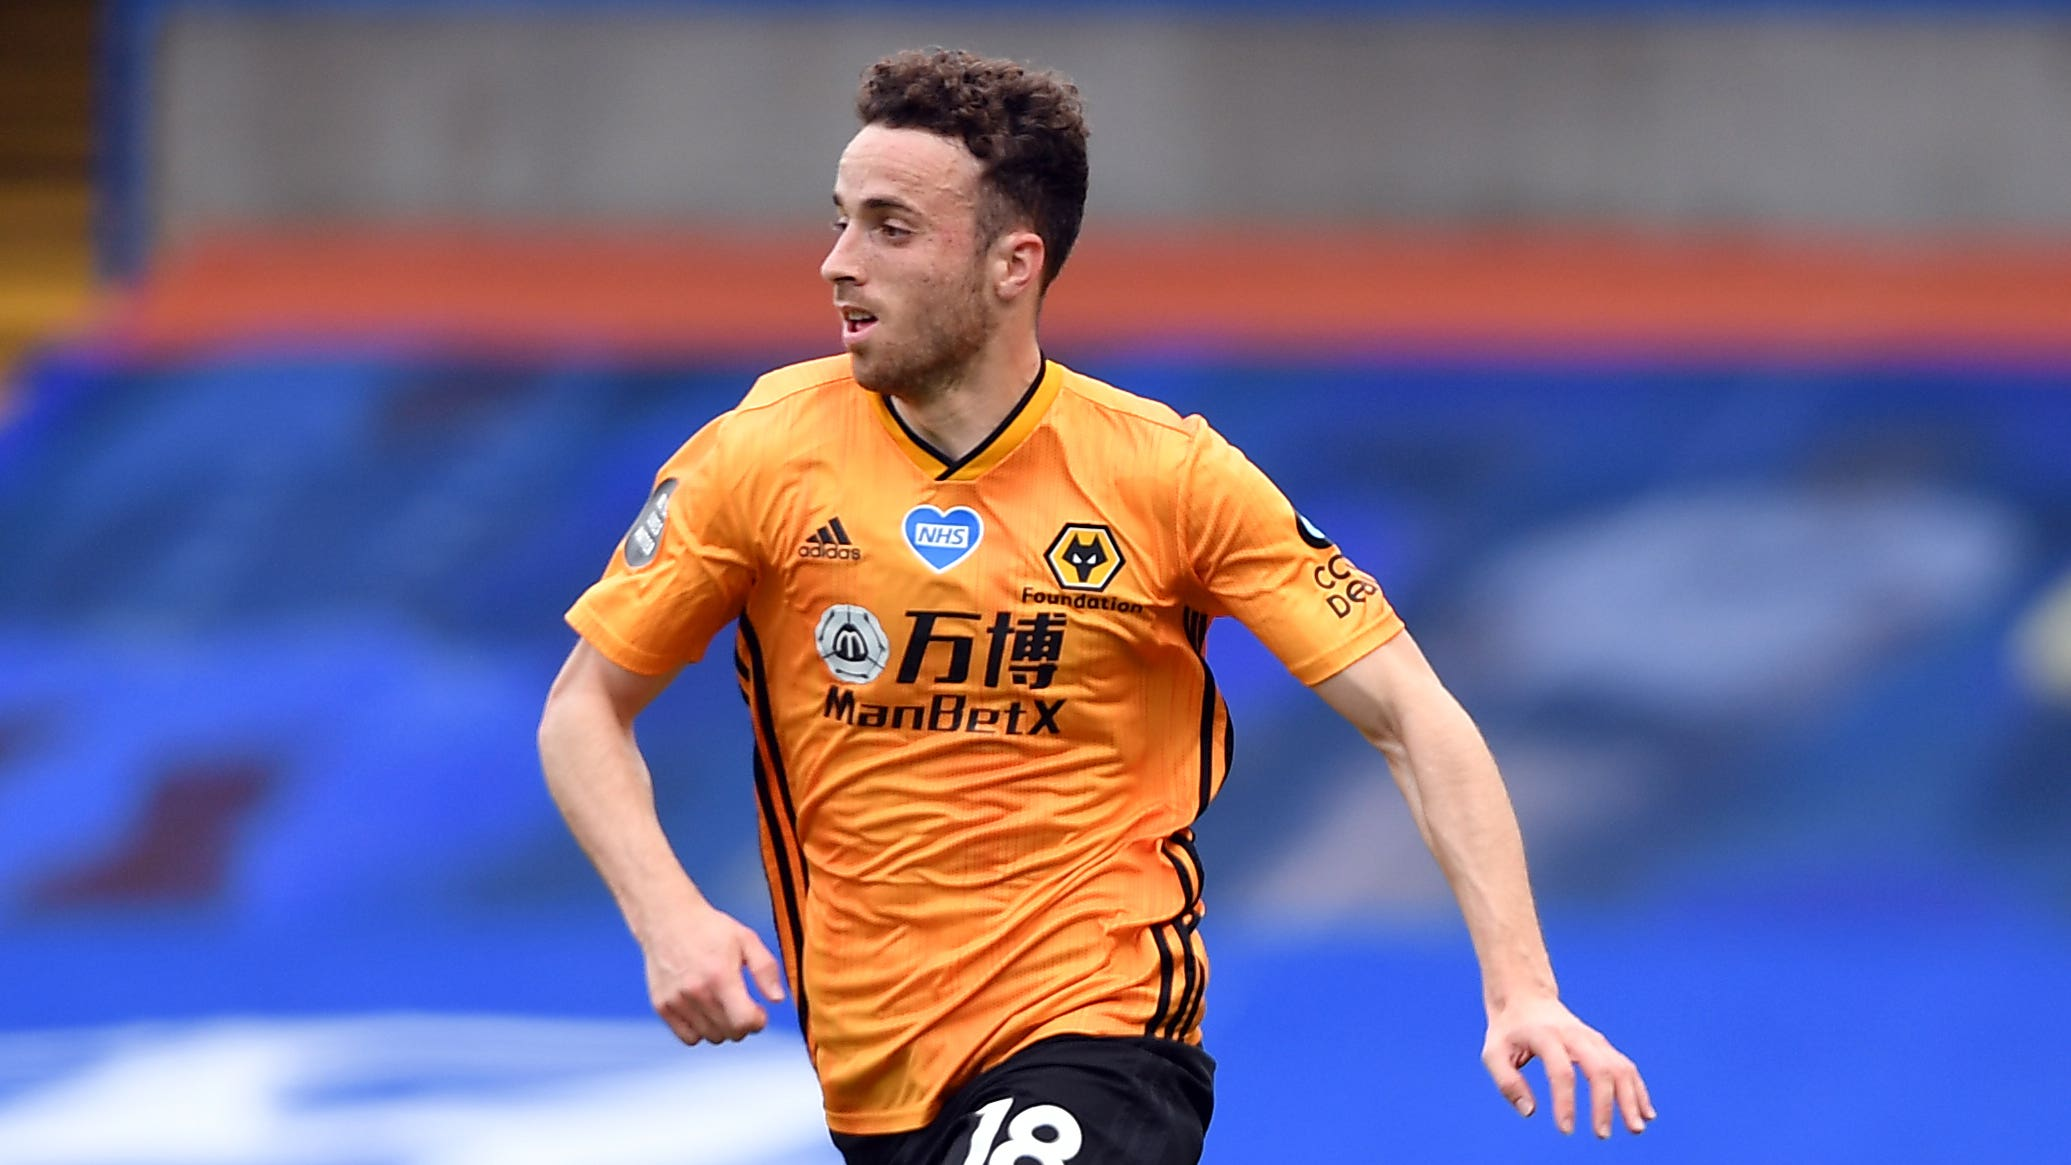 liverpool agree a deal for wolves diogo jota bt sport deal for wolves diogo jota bt sport